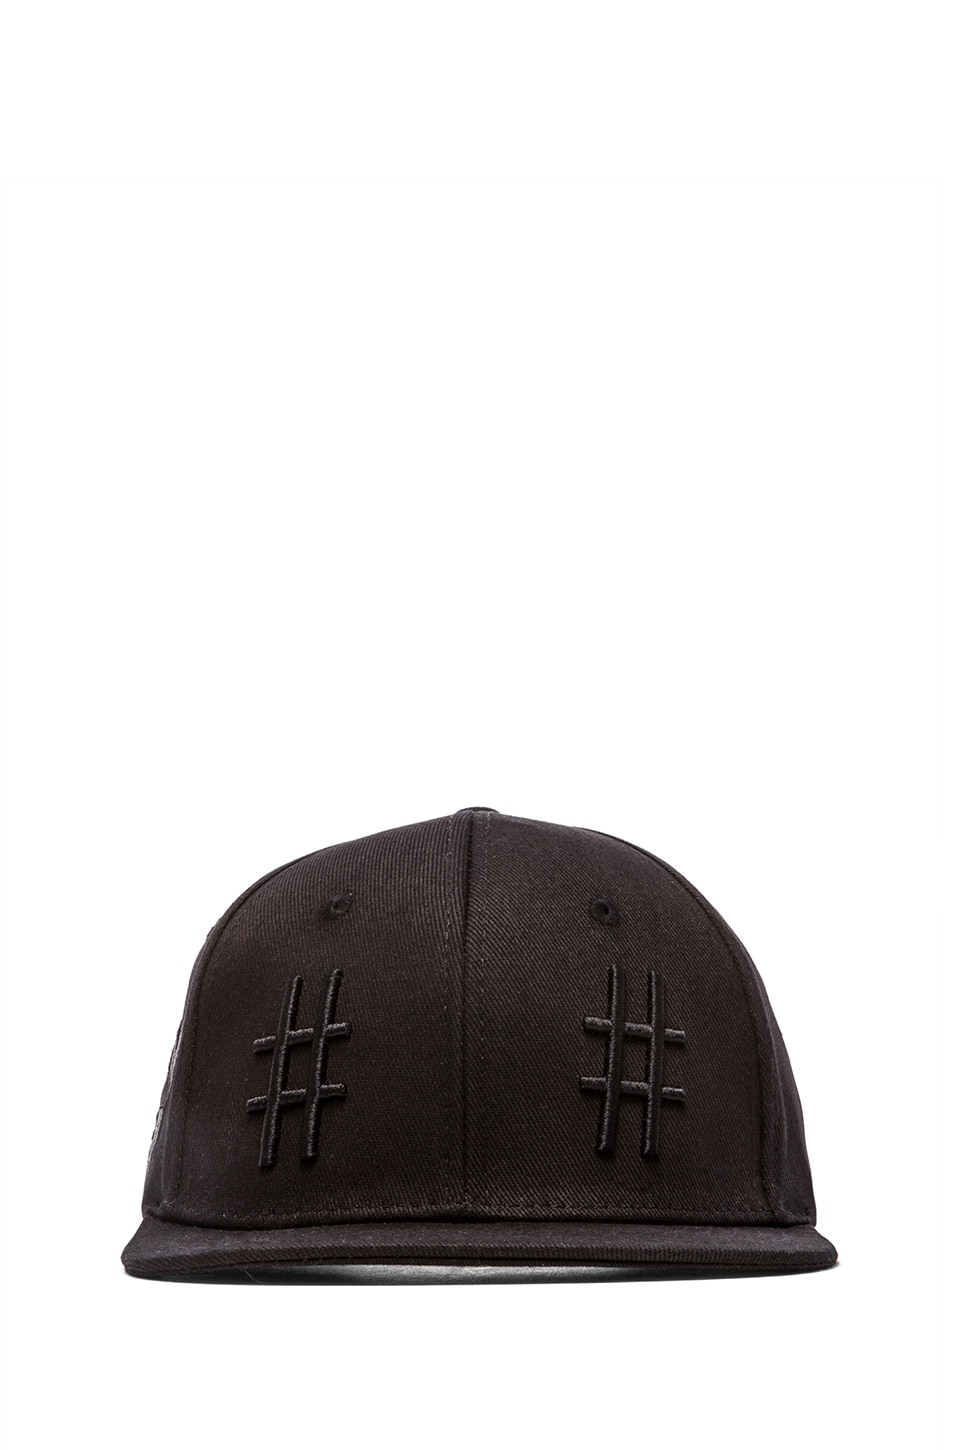 Been Trill Team Hat in Black